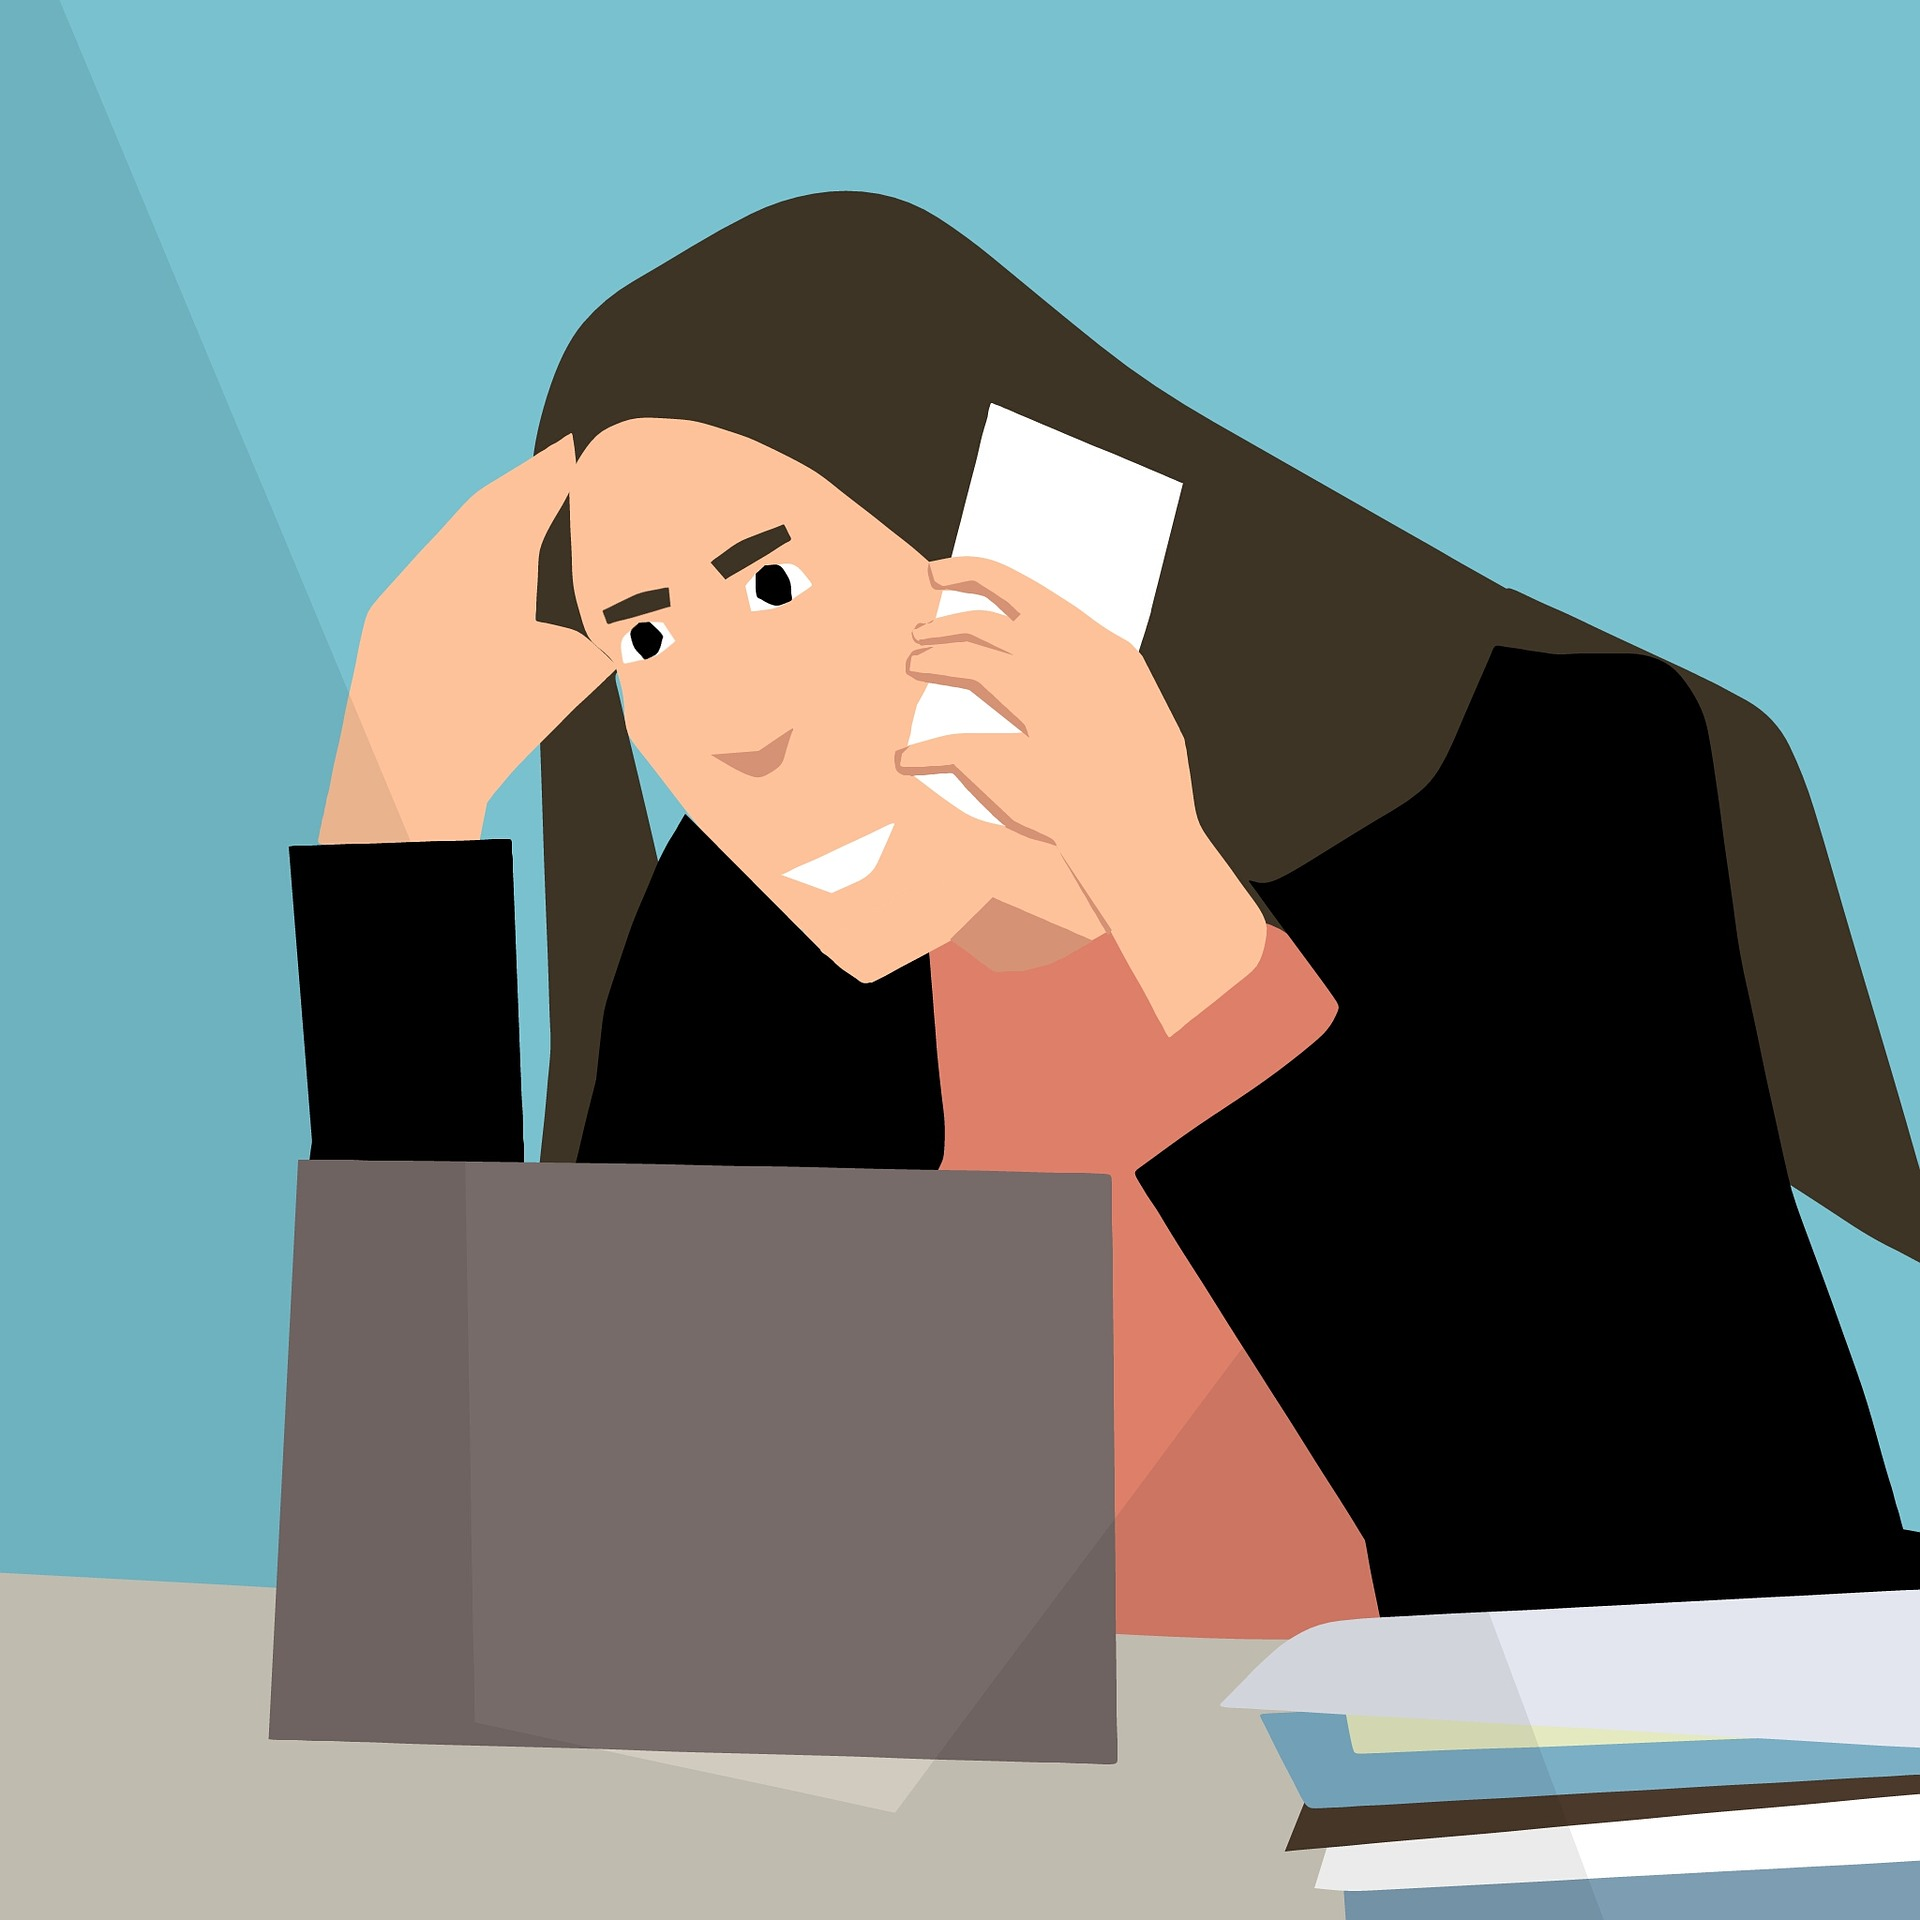 The Cold Calling Calamity